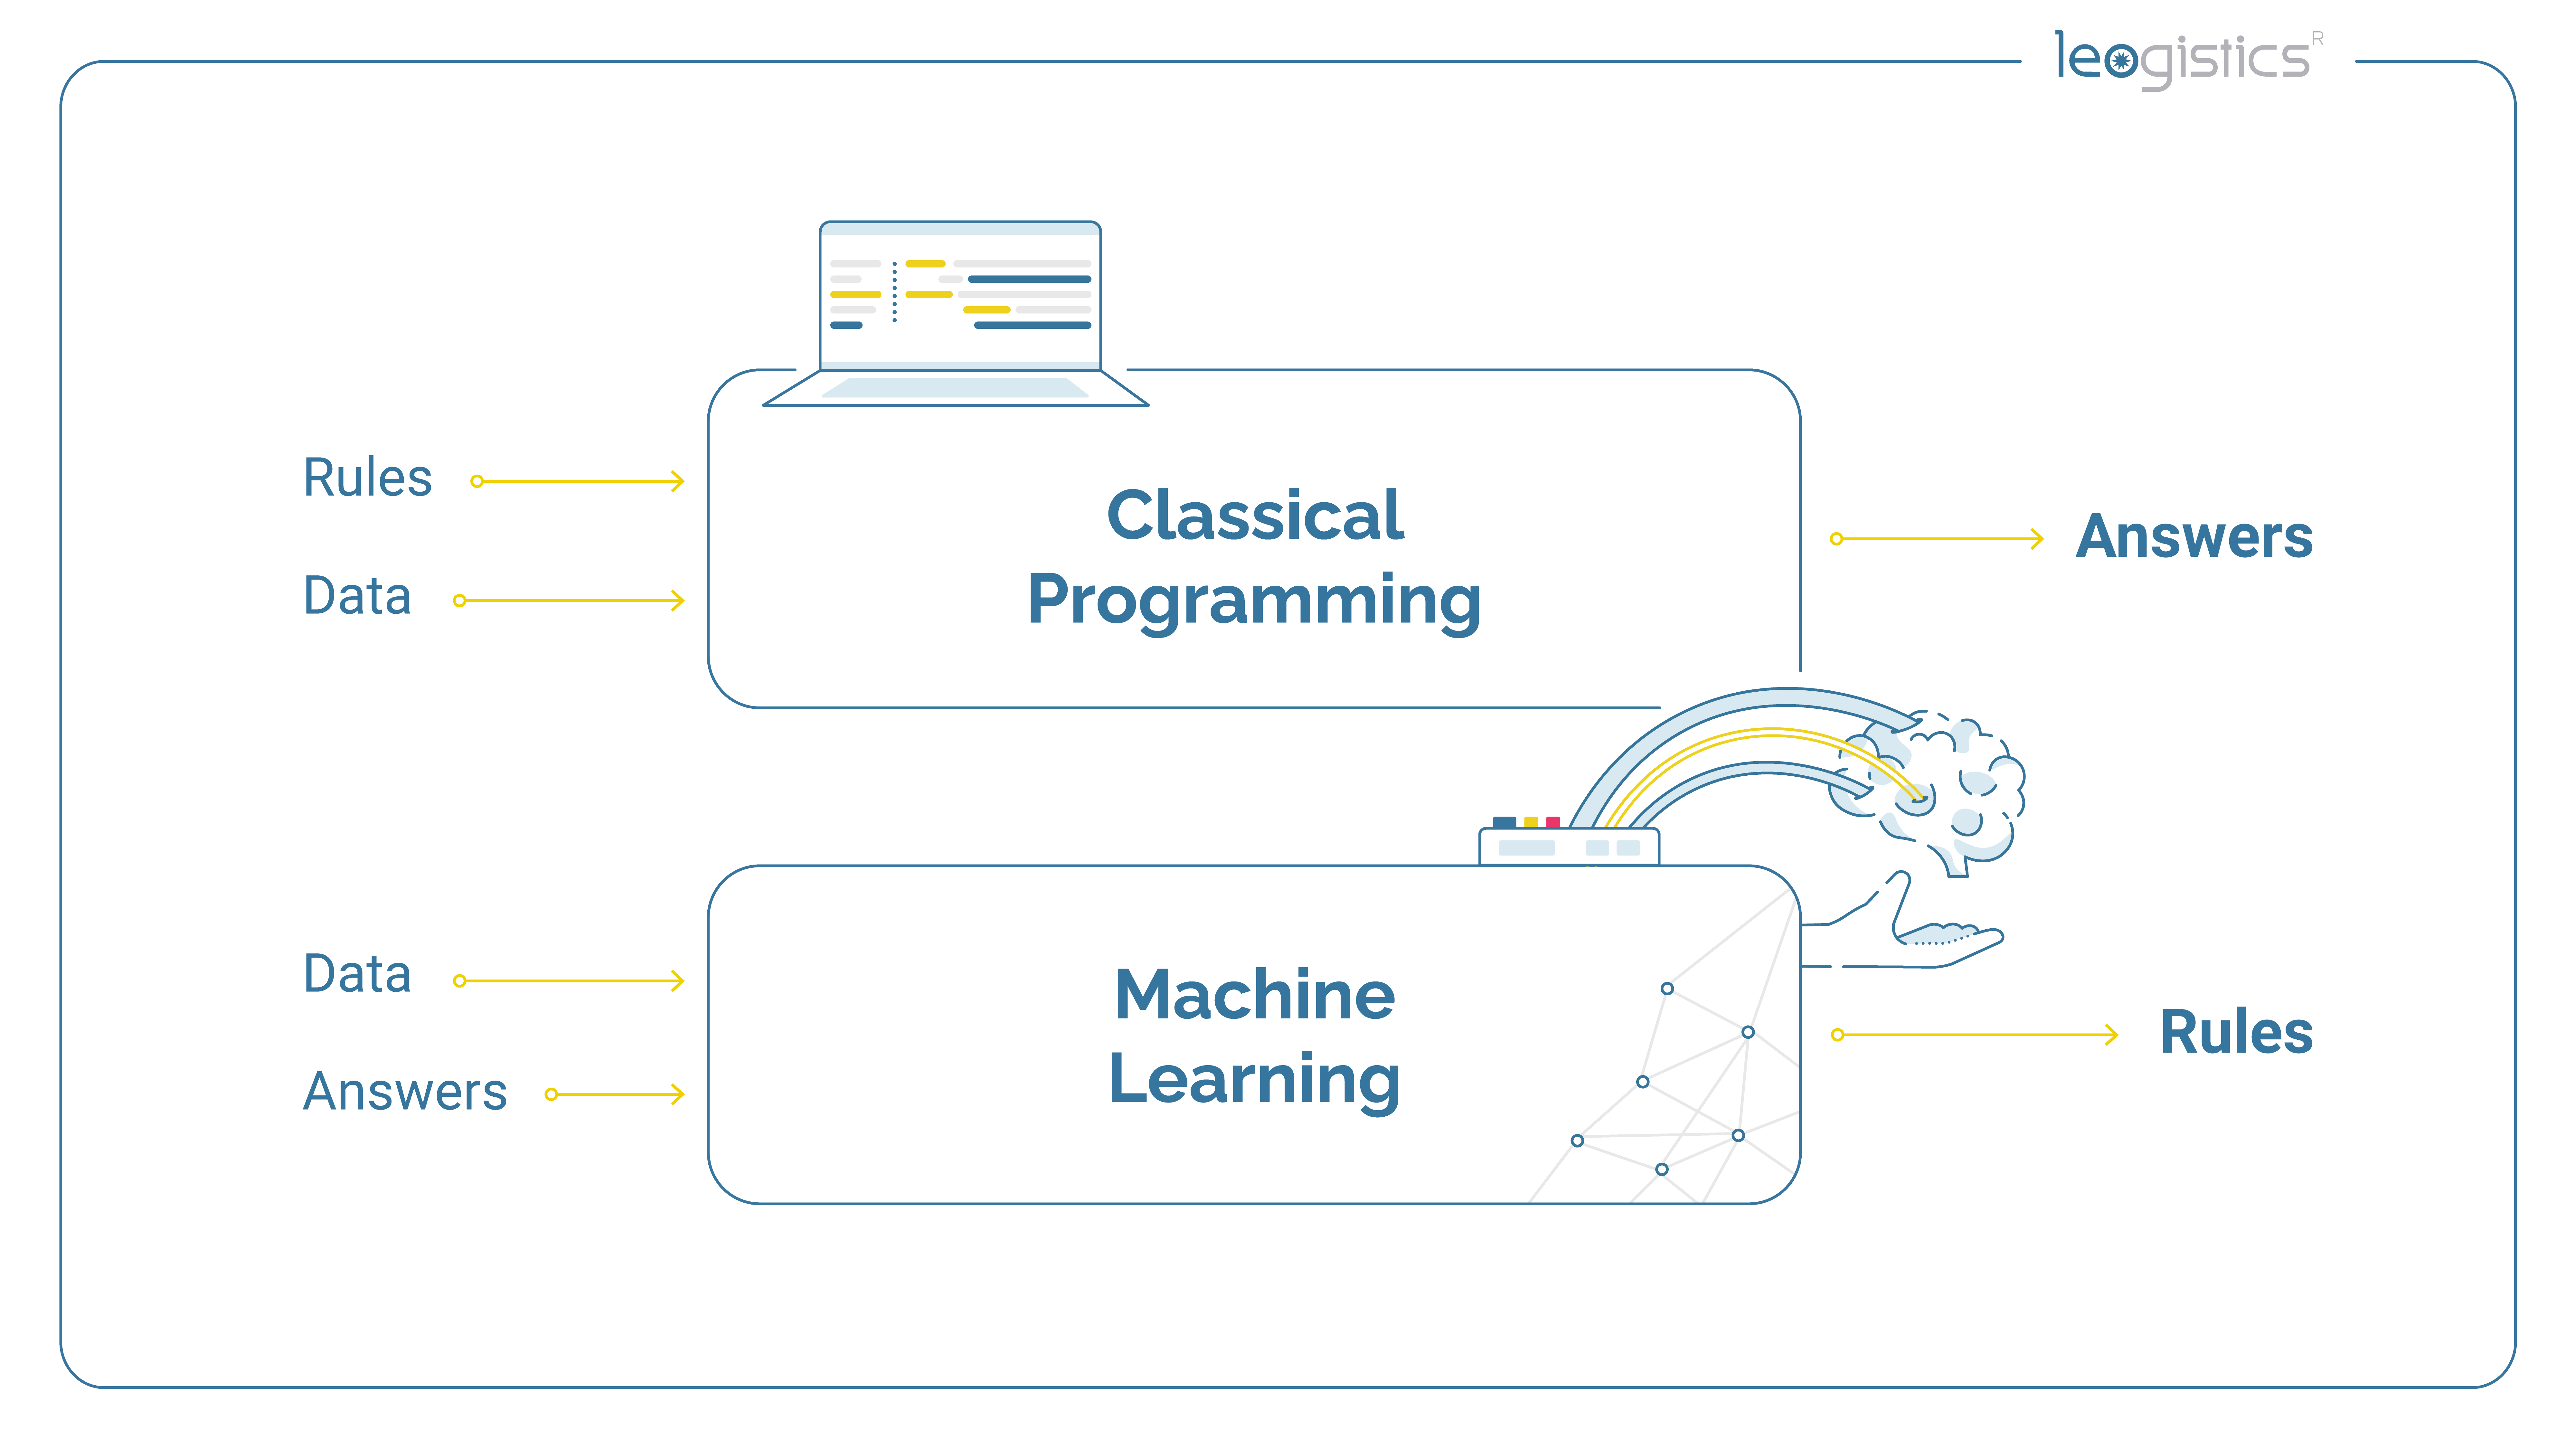 Difference between machine learning and classical programming